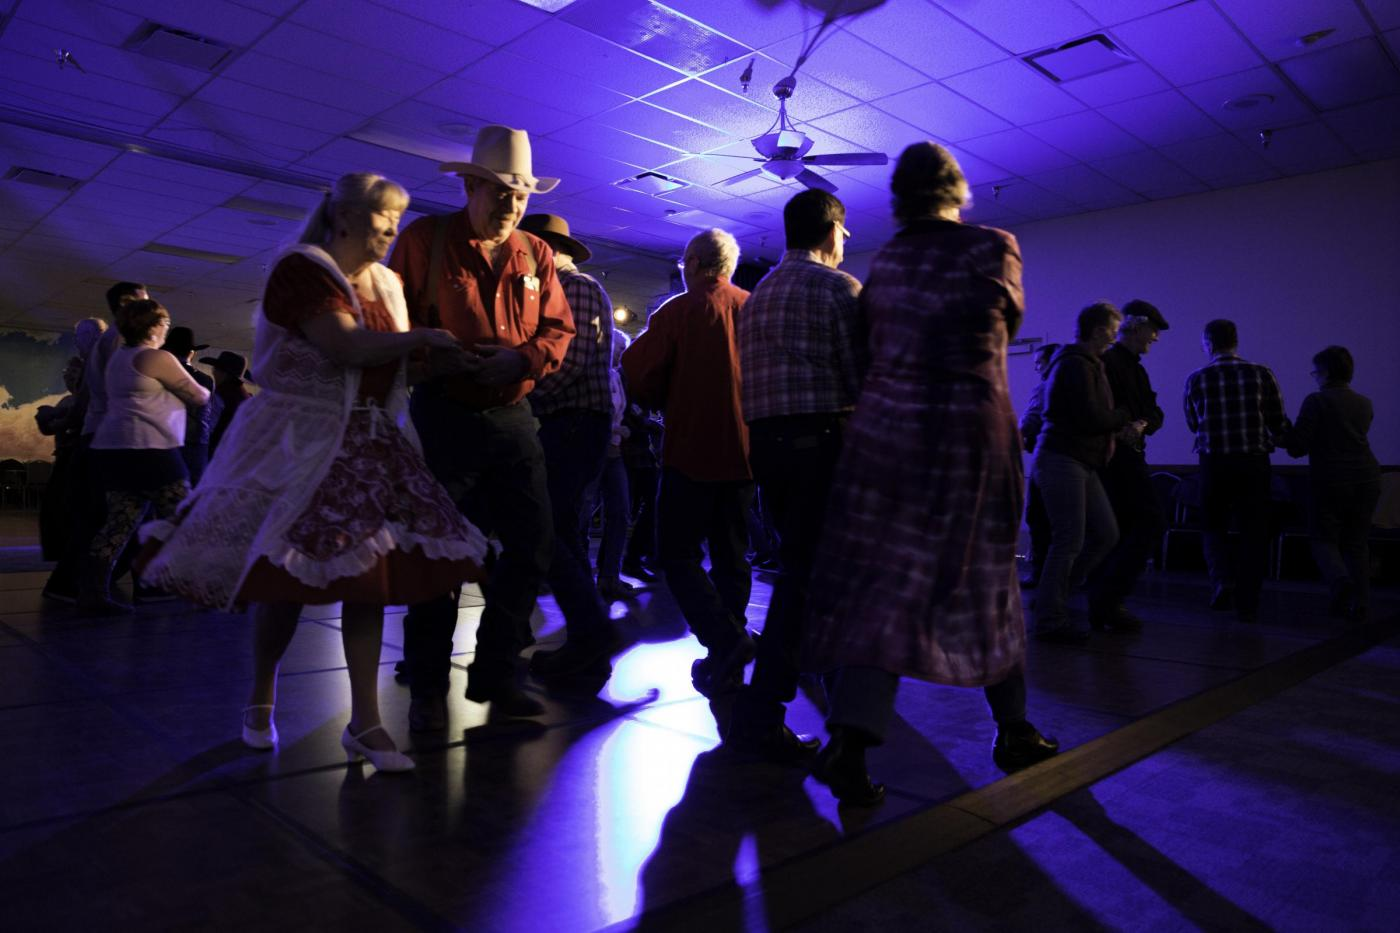 Cowboy Poetry Gathering attendees get a move on at a lively square dance.